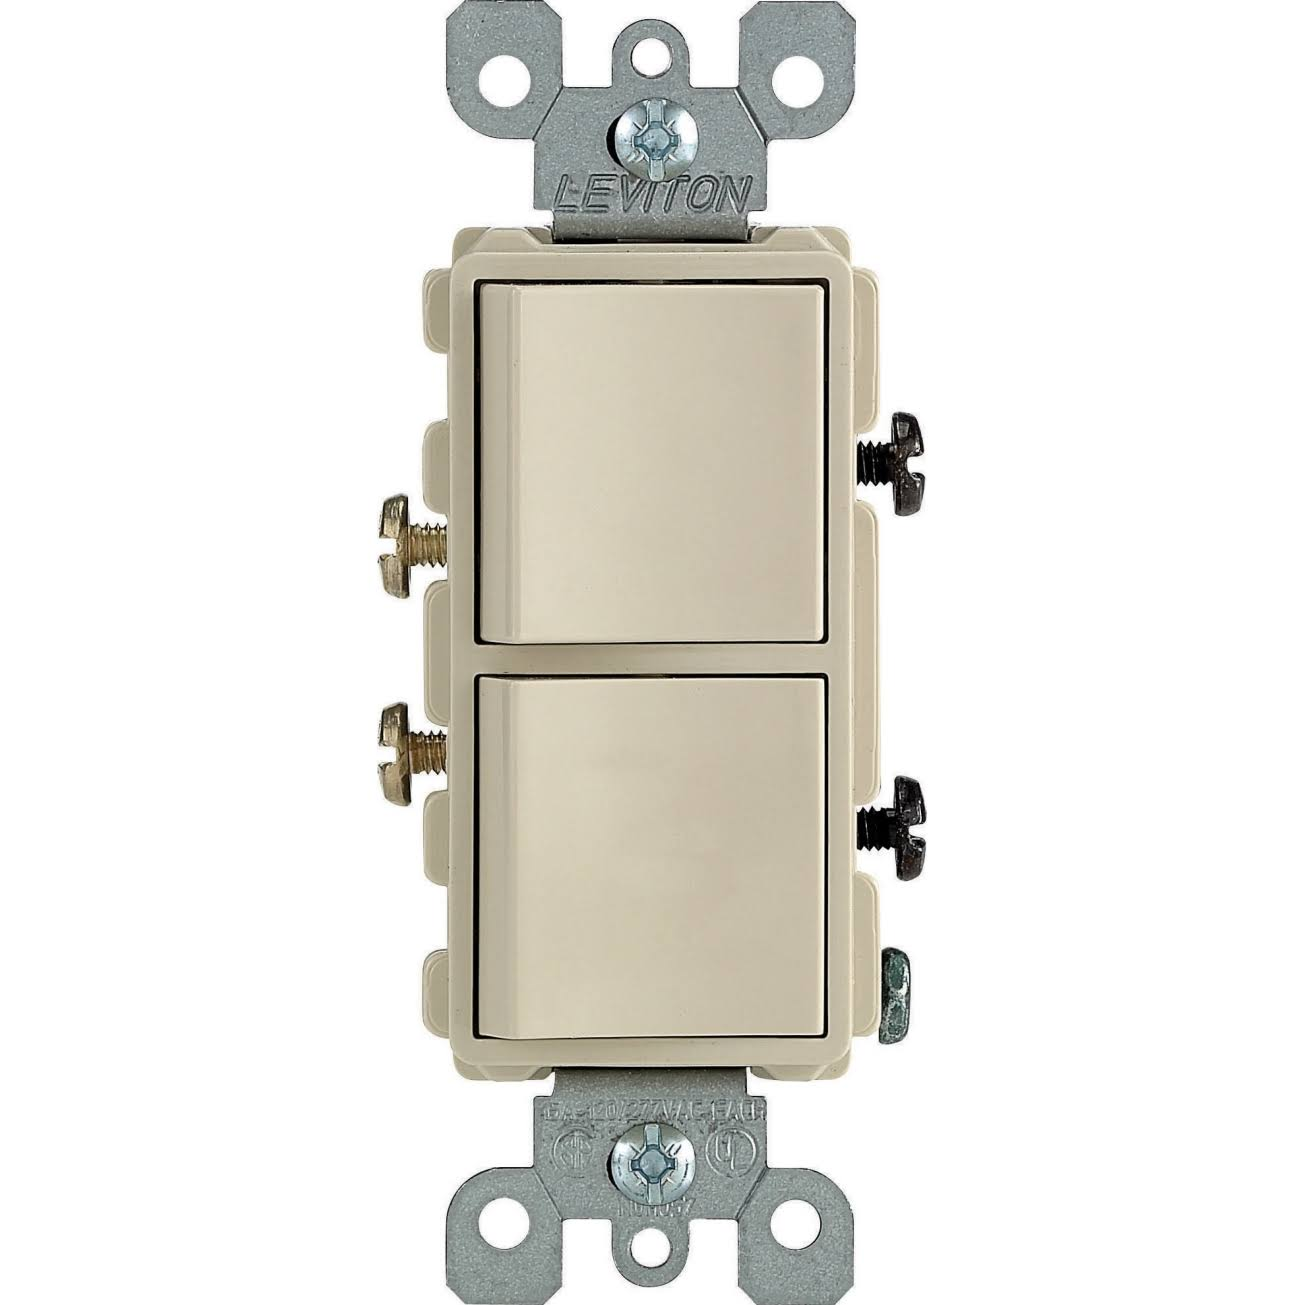 Leviton Decora Dual Rocker Switch - Ivory, 15A, Single Pole